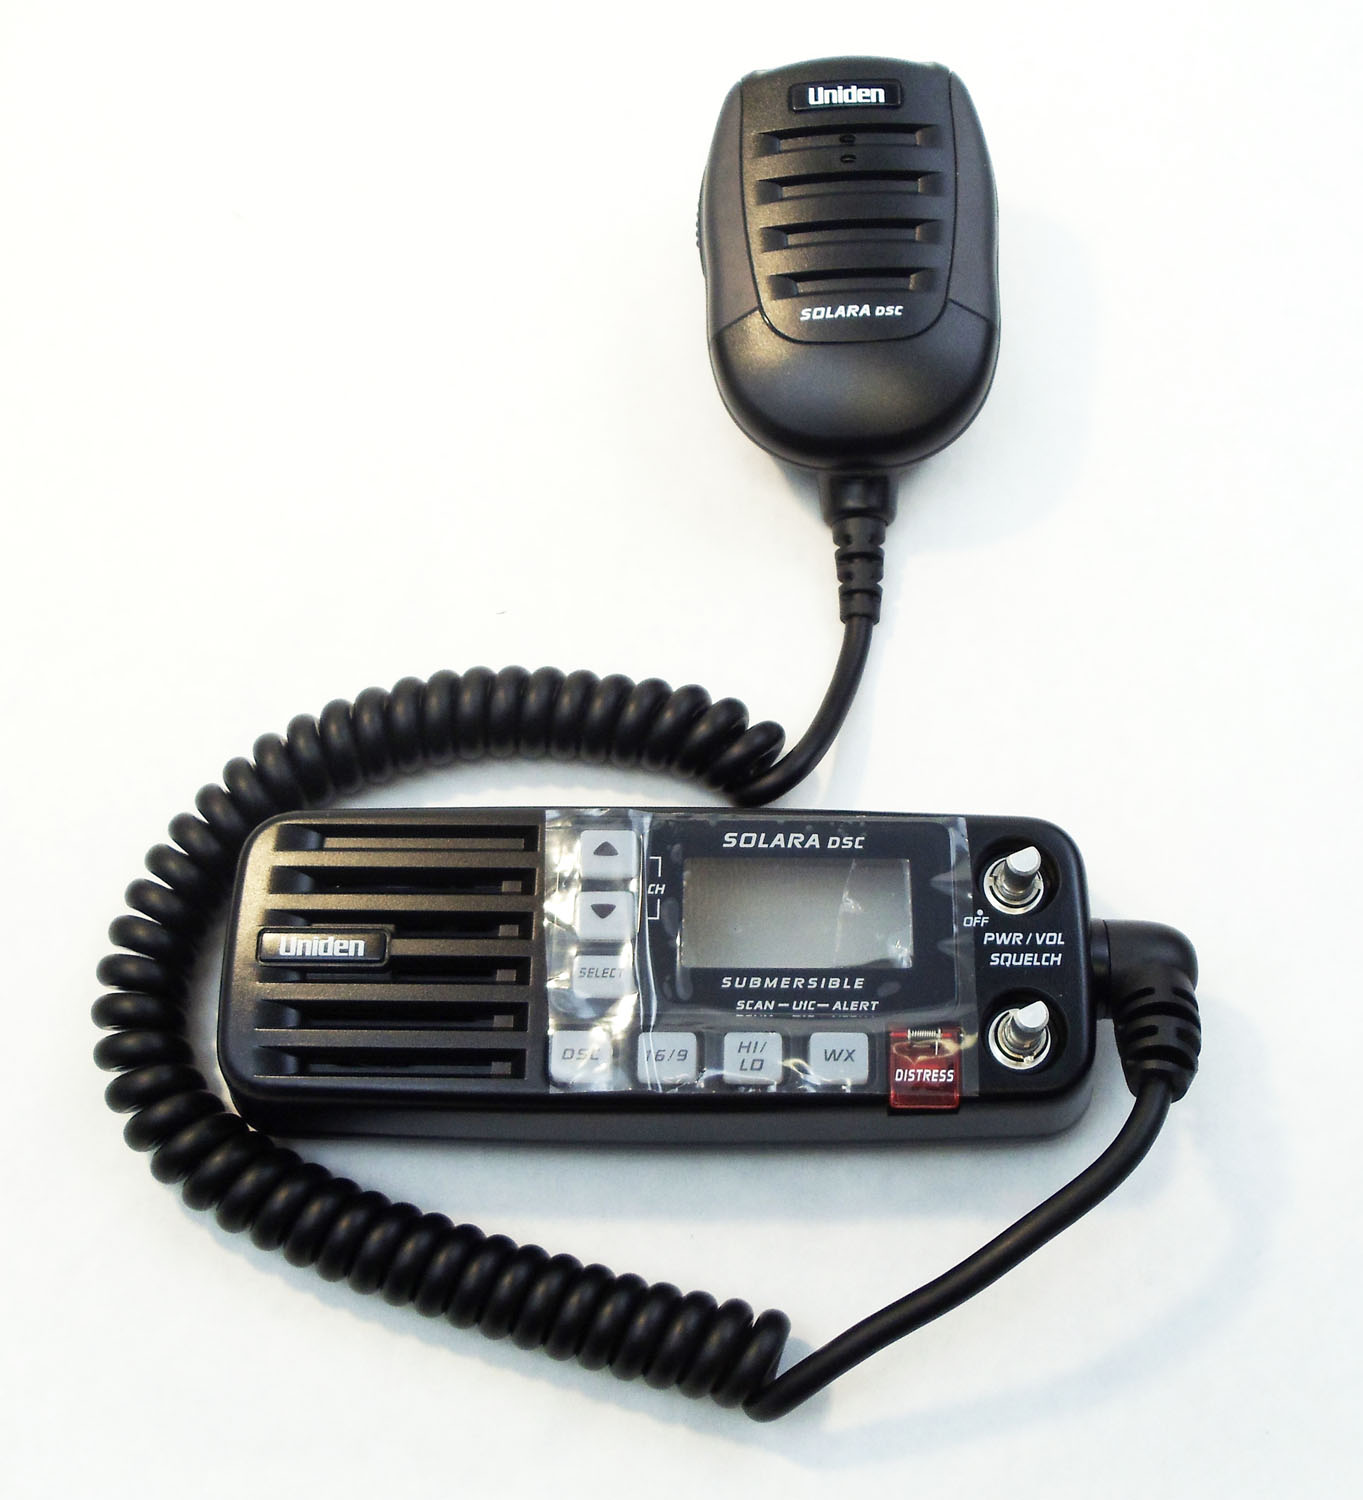 BMKYSOLDSC-B - Uniden Black Replacement Microphone and Front Panel for SOLARA-DSC